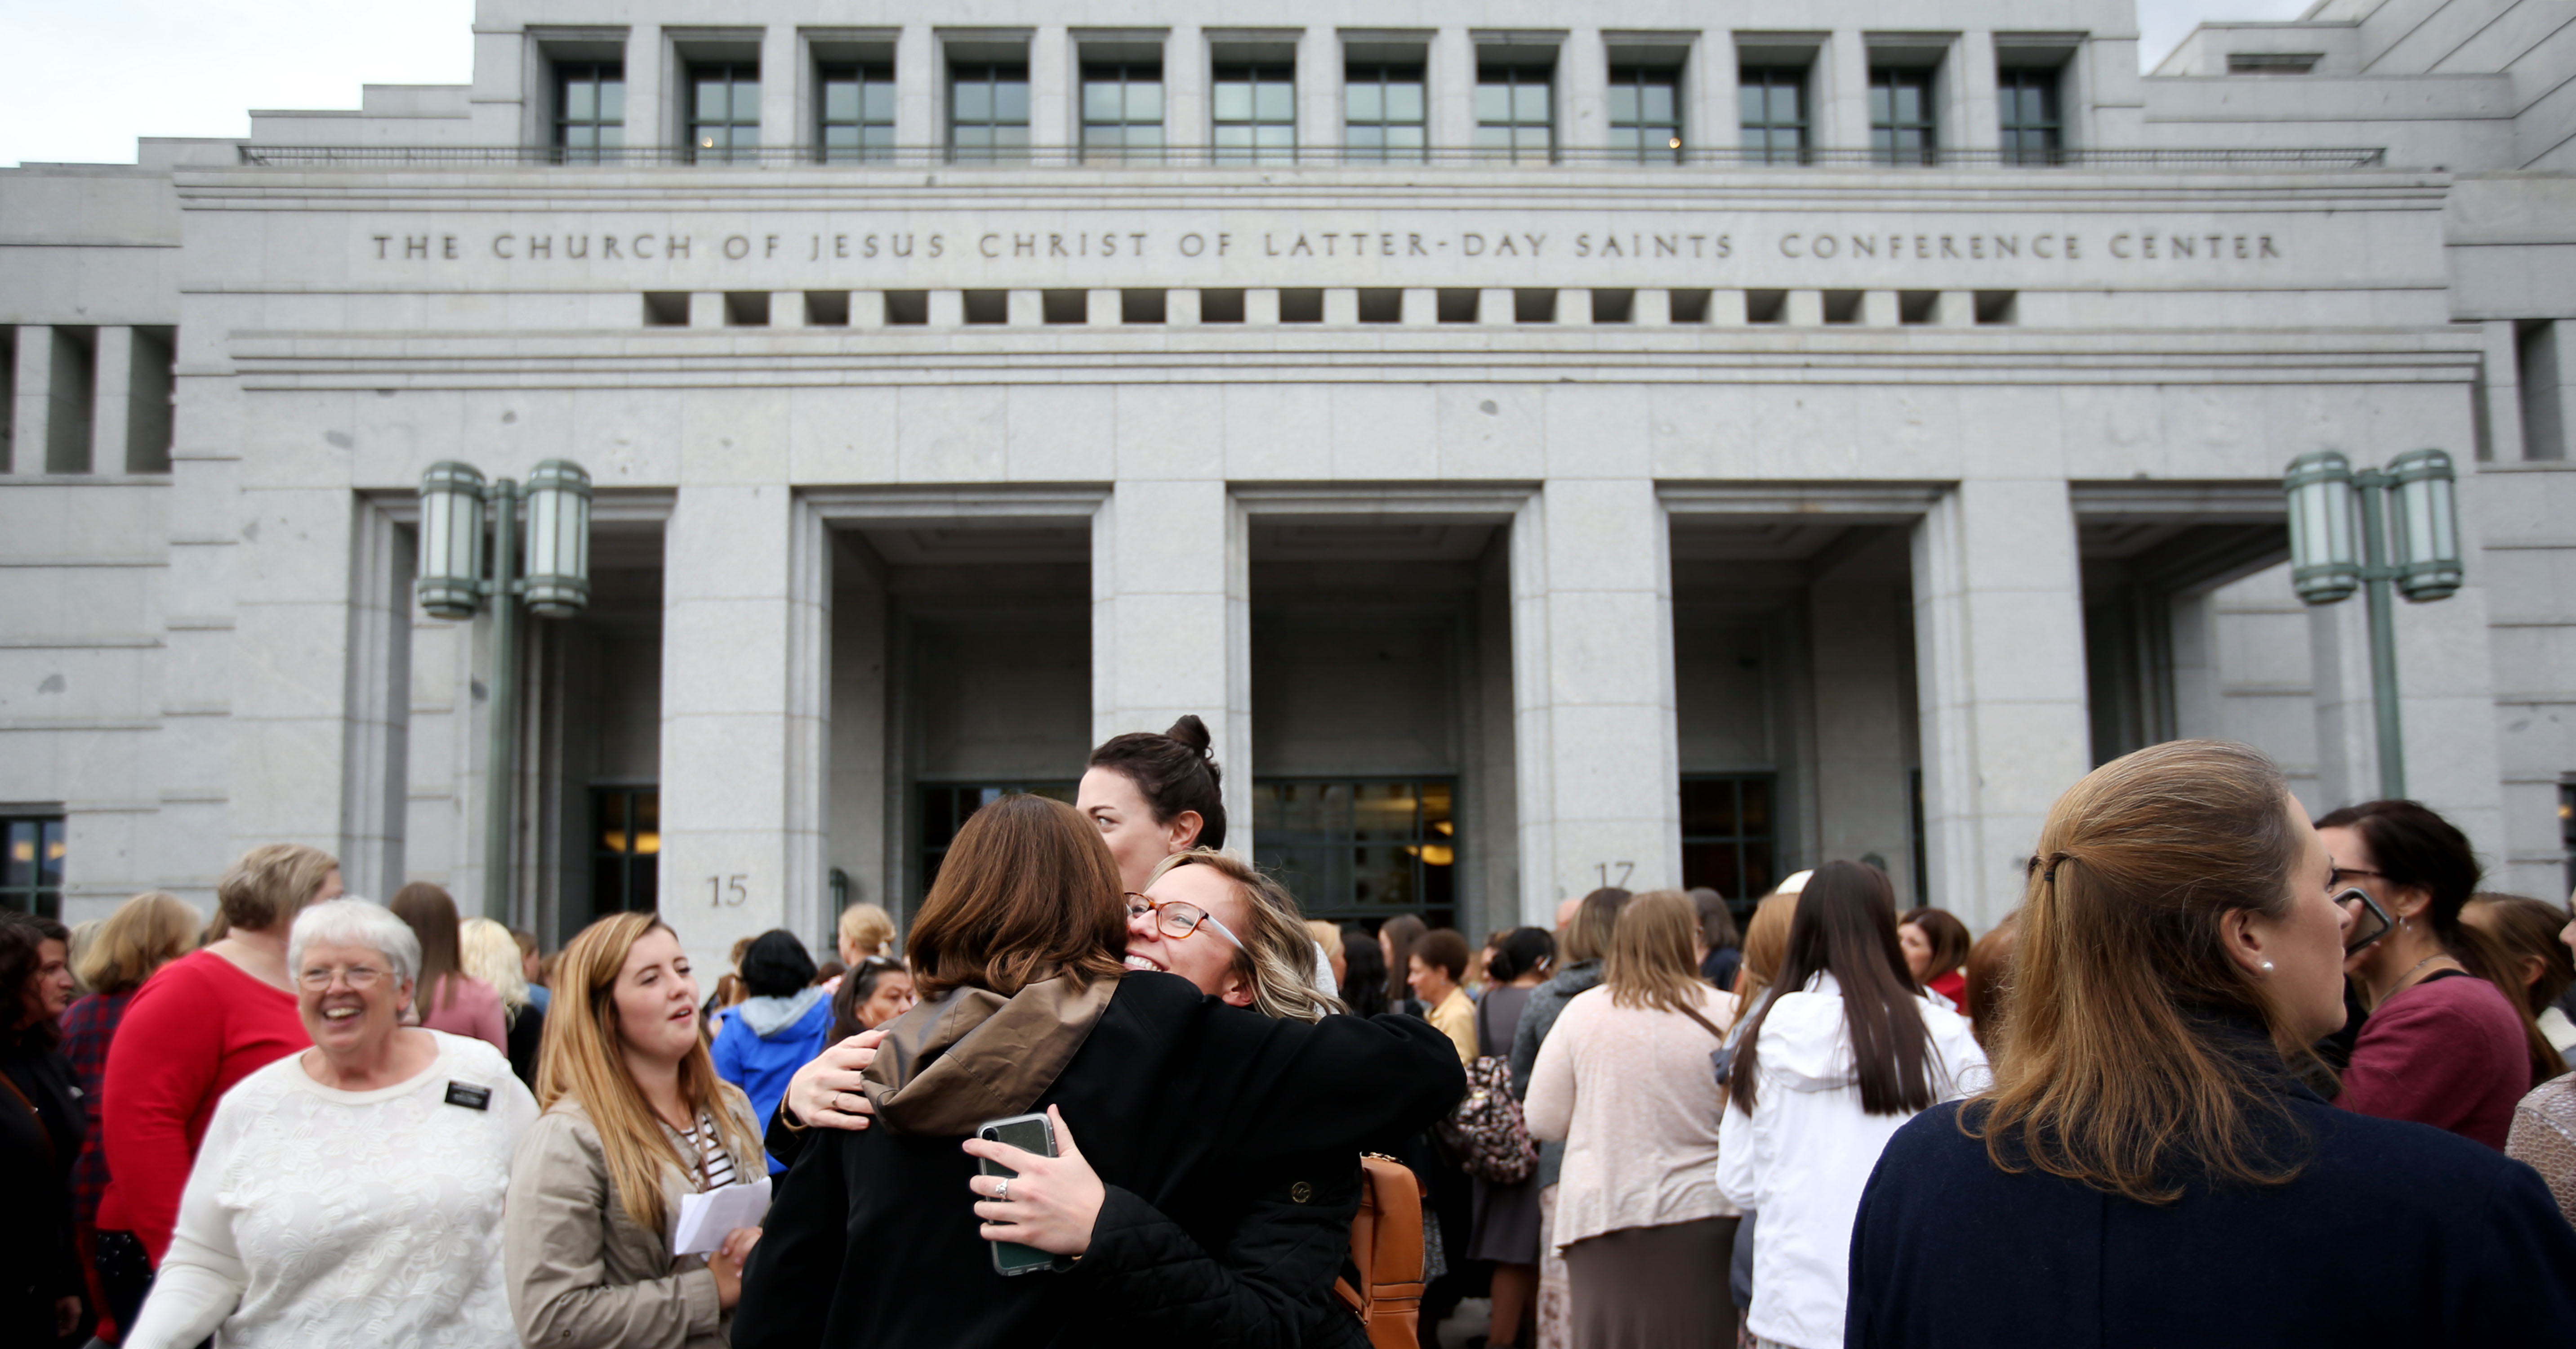 Women gather outside before the start of the general women's session of the 188th Semiannual General Conference of The Church of Jesus Christ of Latter-day Saints held in the Conference Center in downtown Salt Lake City on Saturday, Oct. 6, 2018.